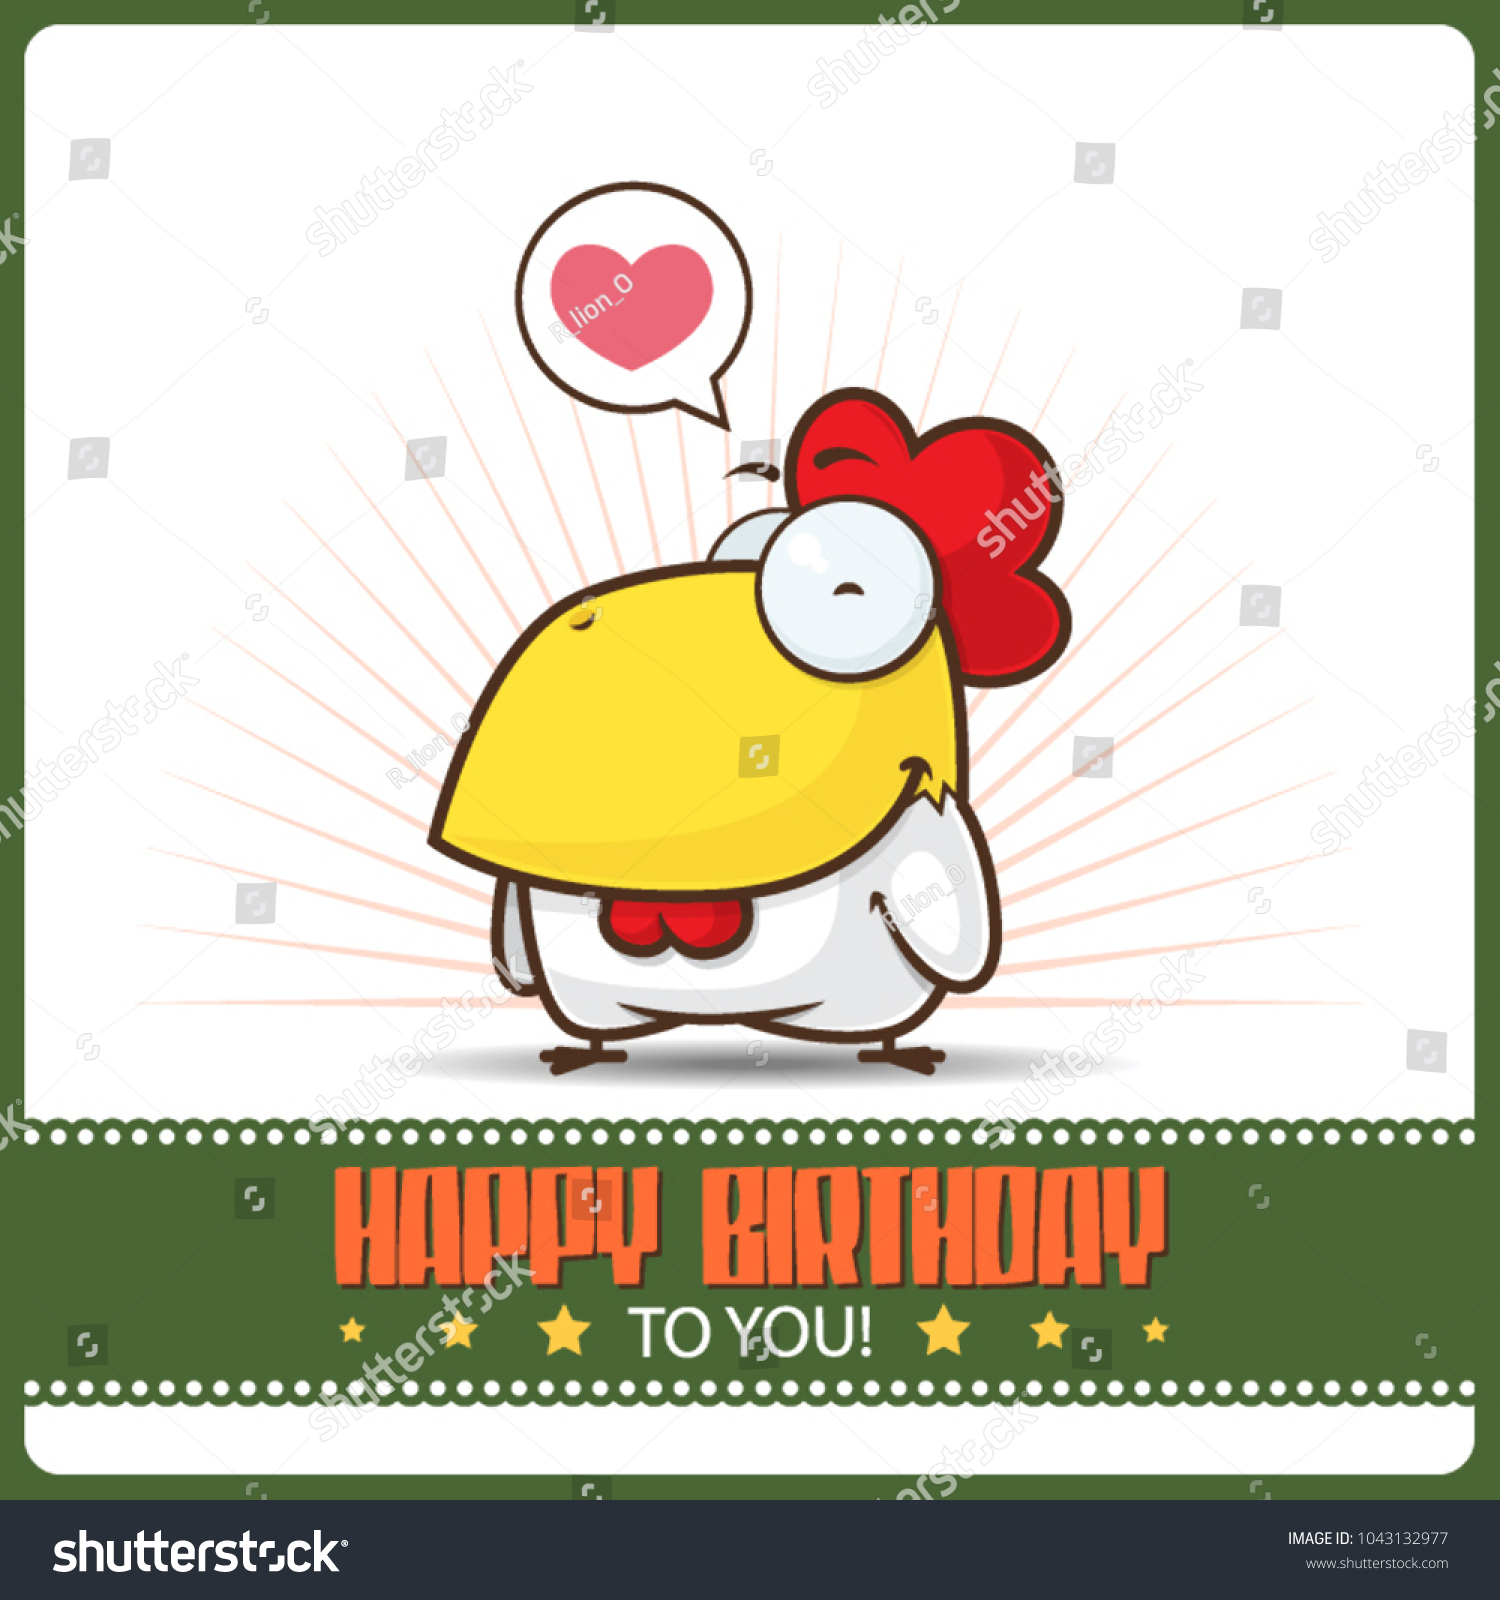 Funny happy birthday greeting card cartoon stock vector 1043132977 funny happy birthday greeting card with cartoon rooster character kristyandbryce Images